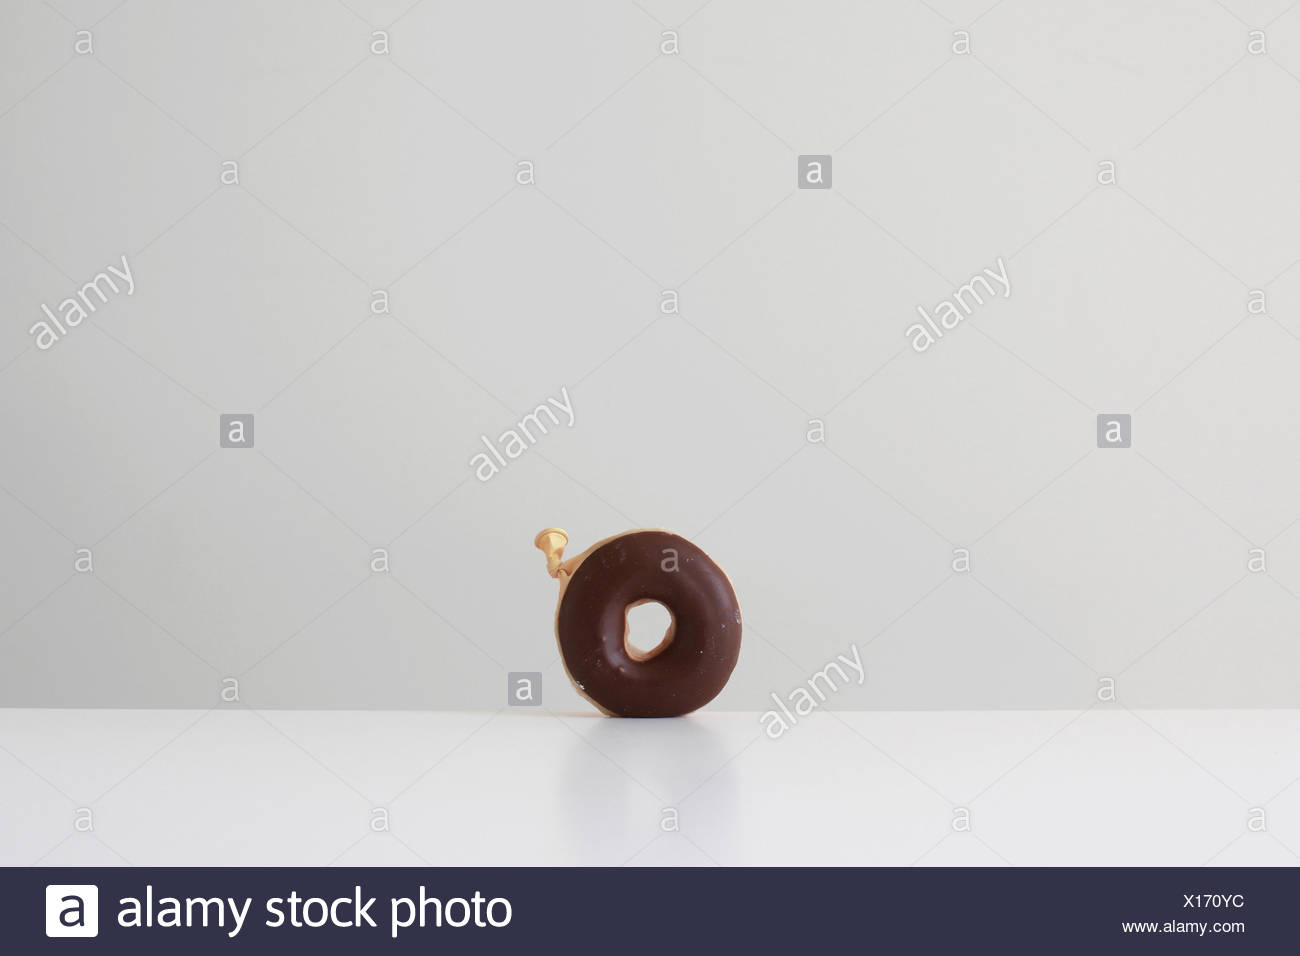 Conceptual donut made from a balloon - Stock Image